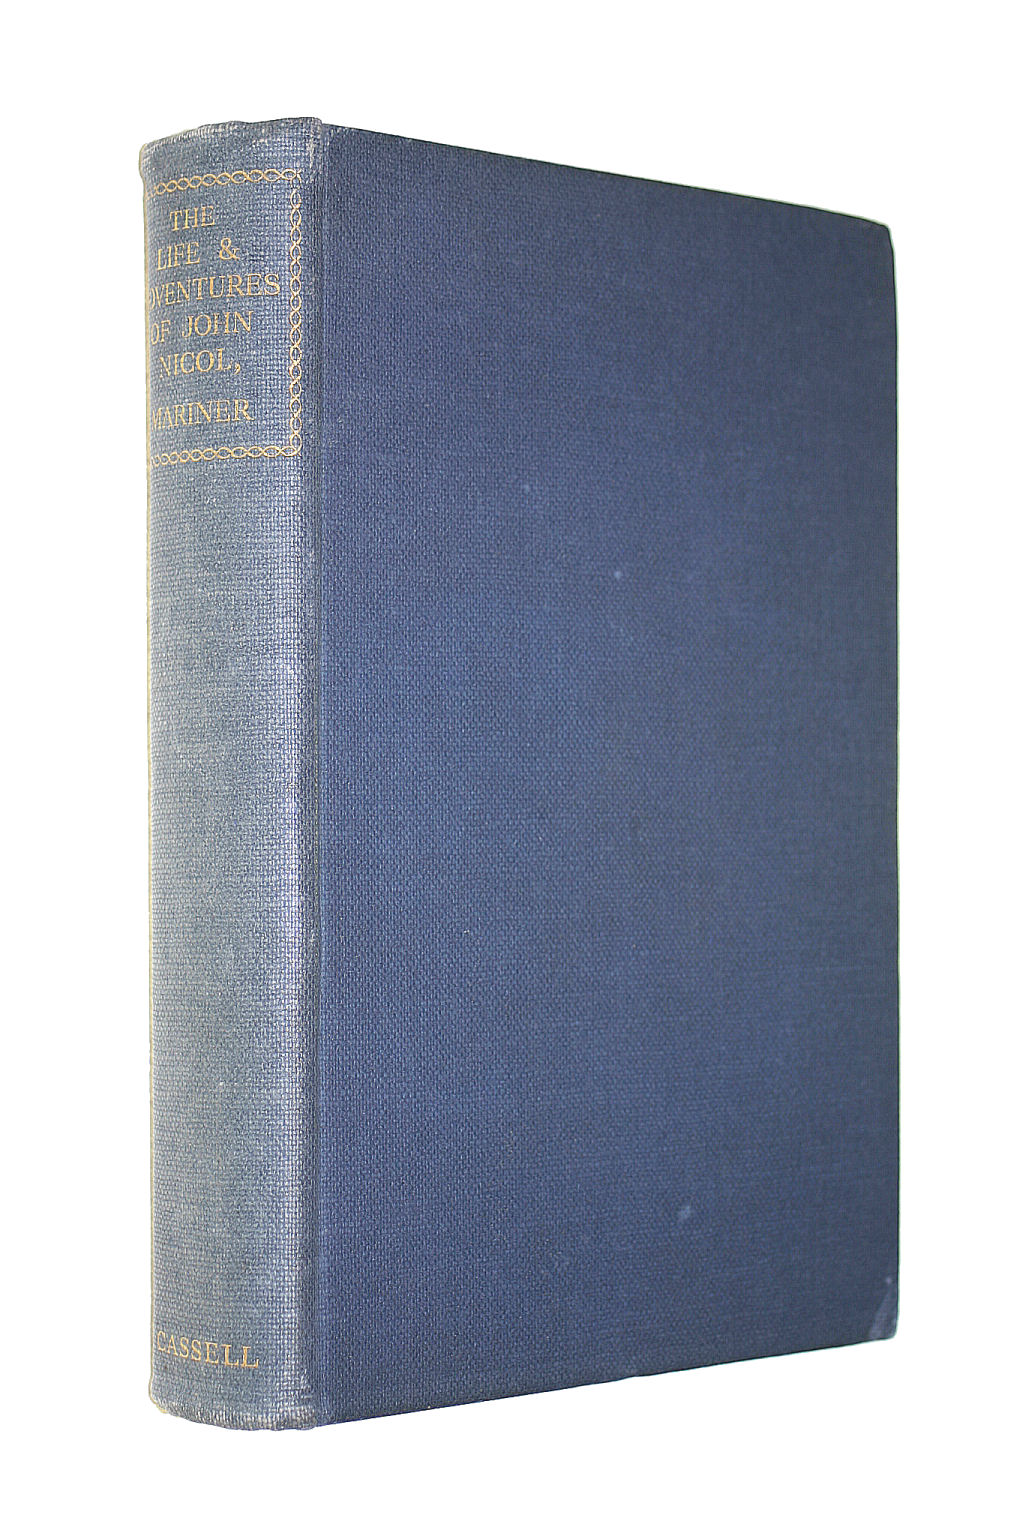 Image for The Life And Adventures Of John Nicol - Mariner